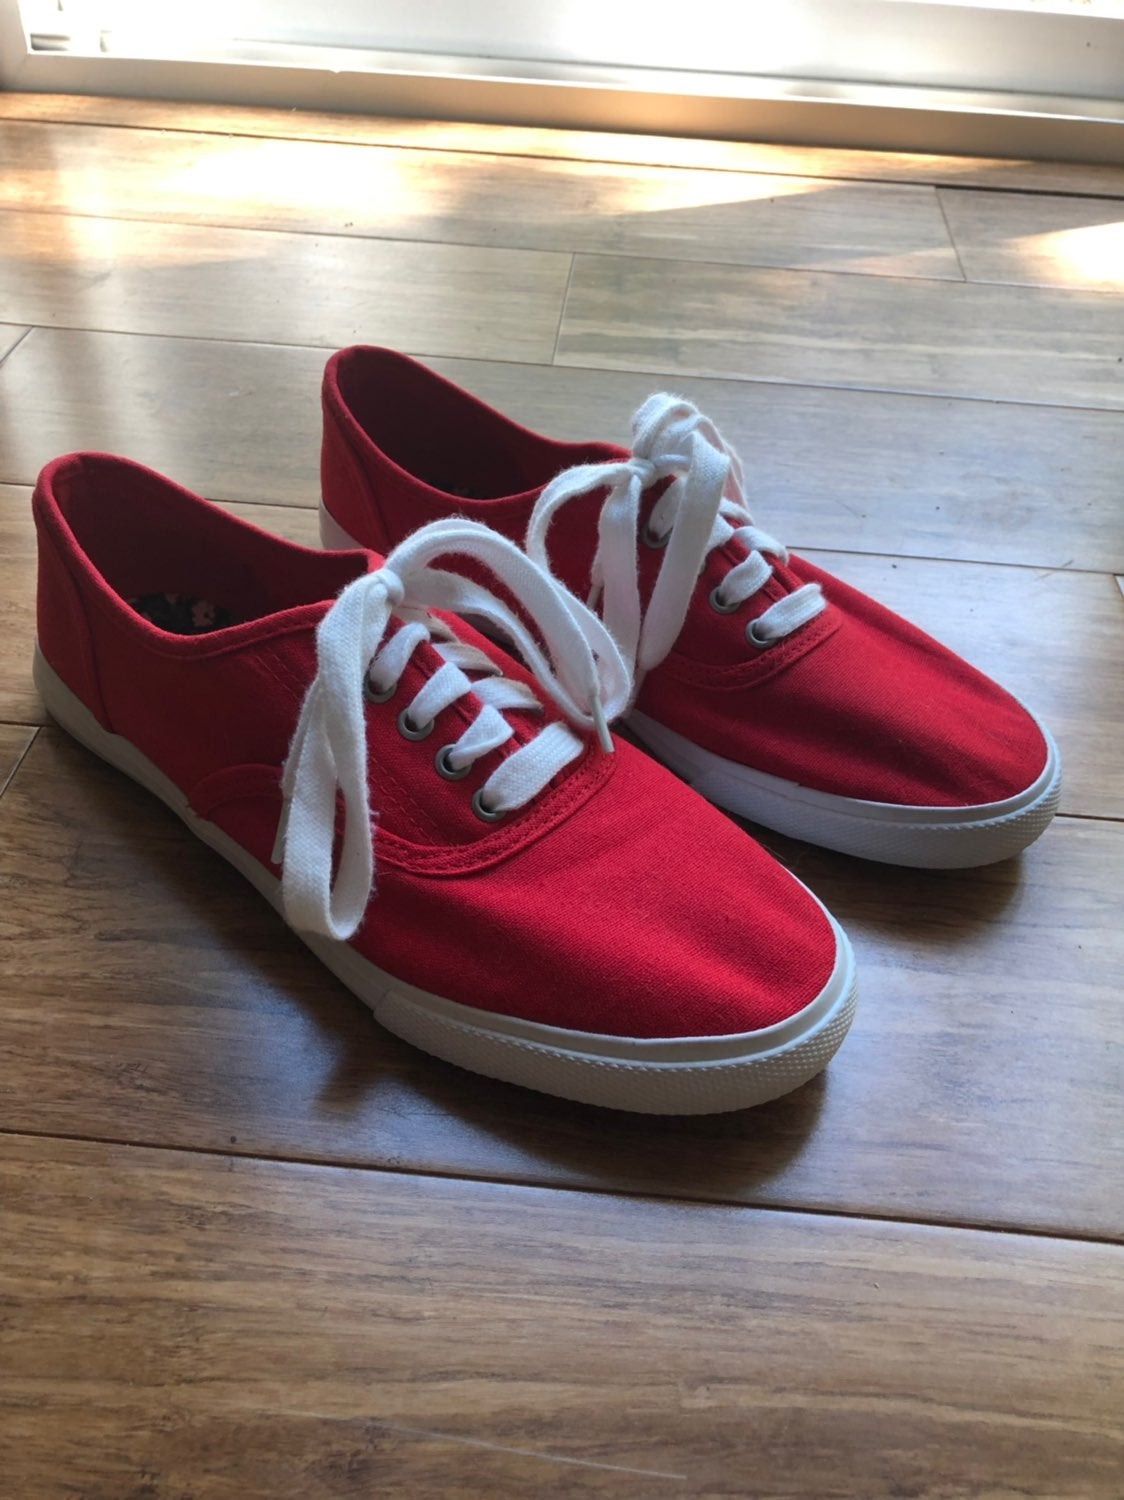 Red Mossimo Tennis Shoes